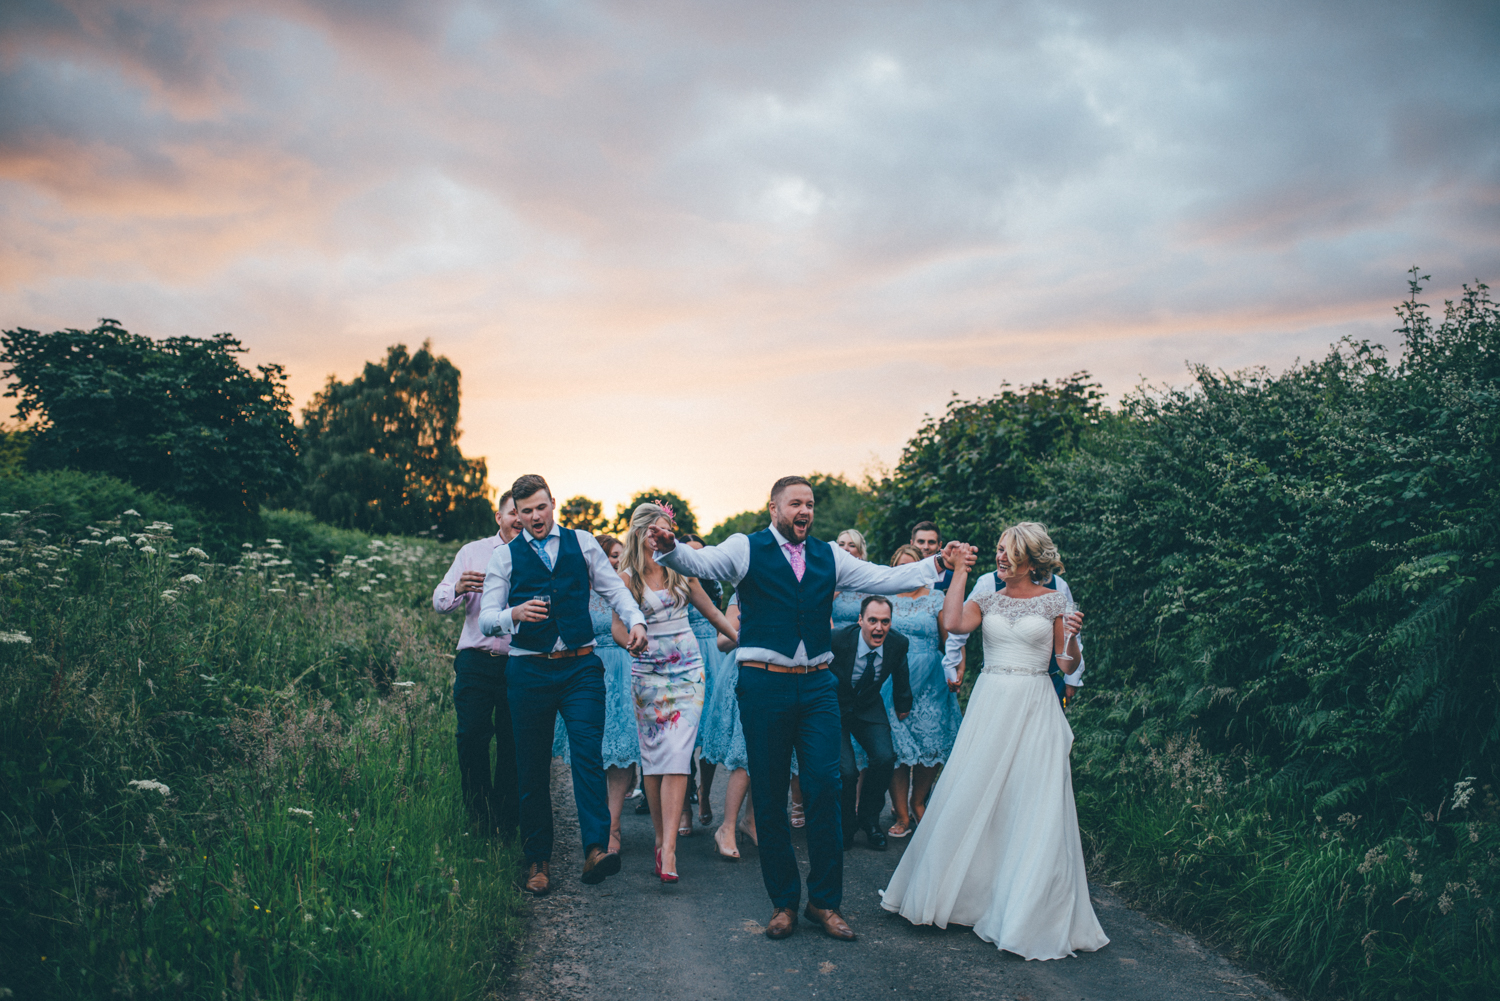 The bride and groom dance through the country lanes in Kingsley, Cheshire with their best friends, all laughing and singing after their wedding breakfast.